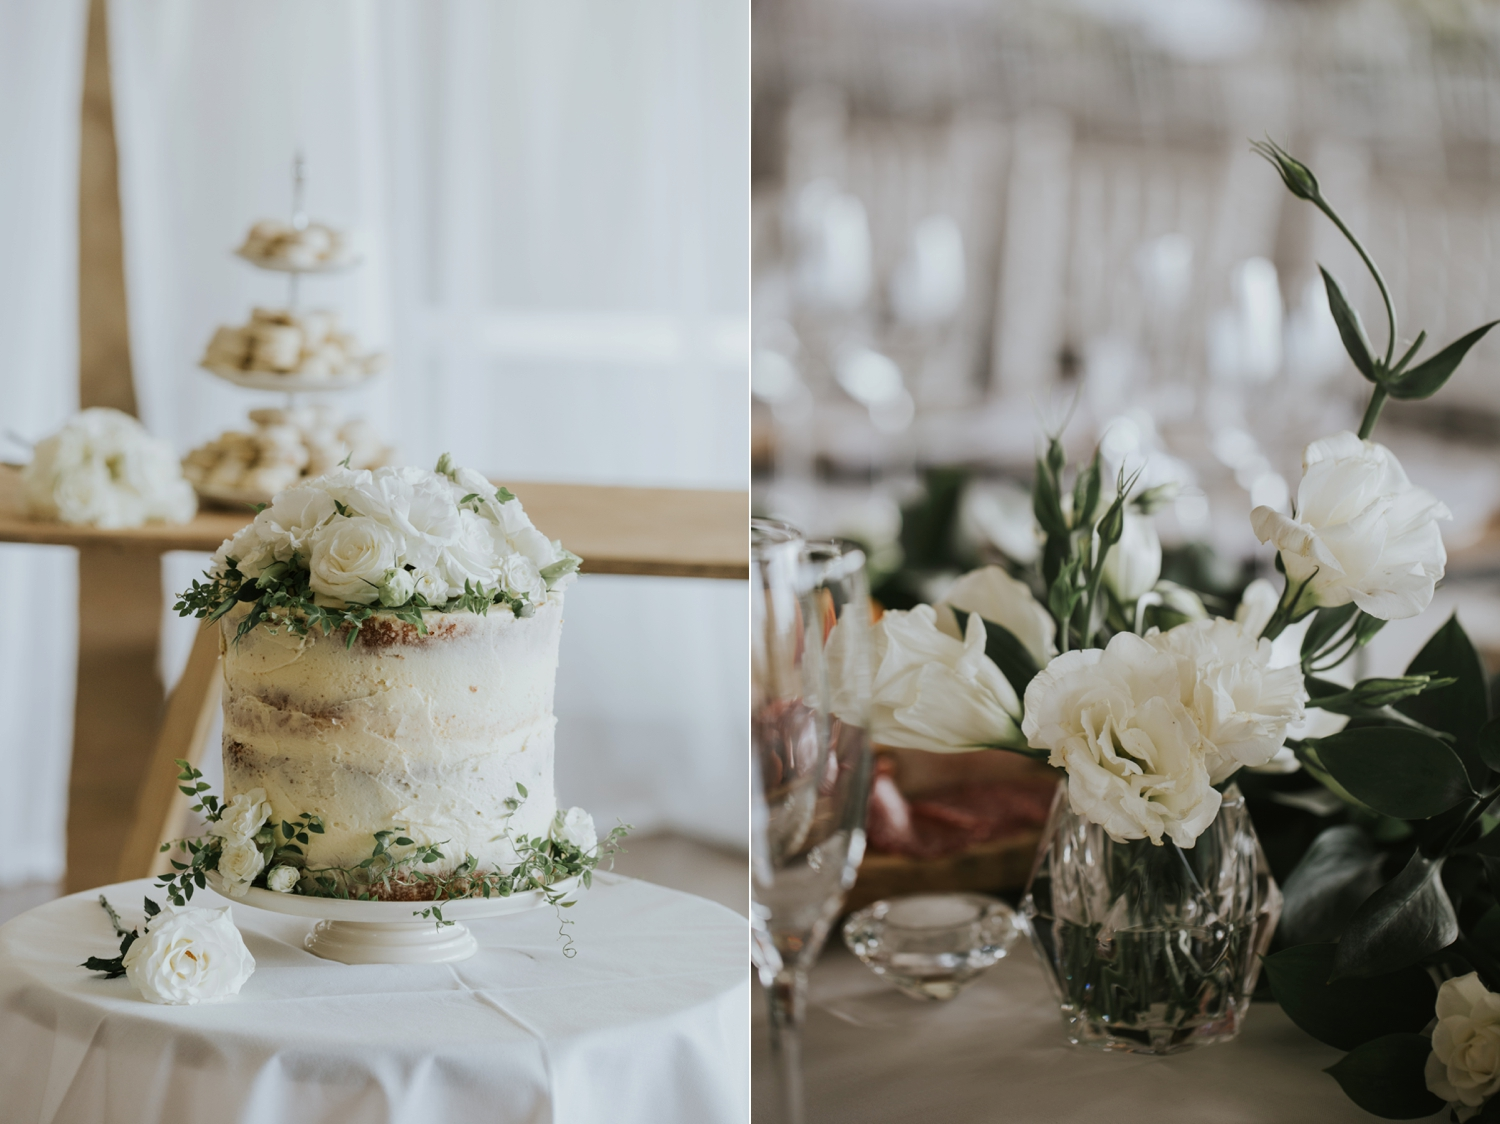 Vancouver wedding cake baker simple white vanilla cake with real roses and greenery on top